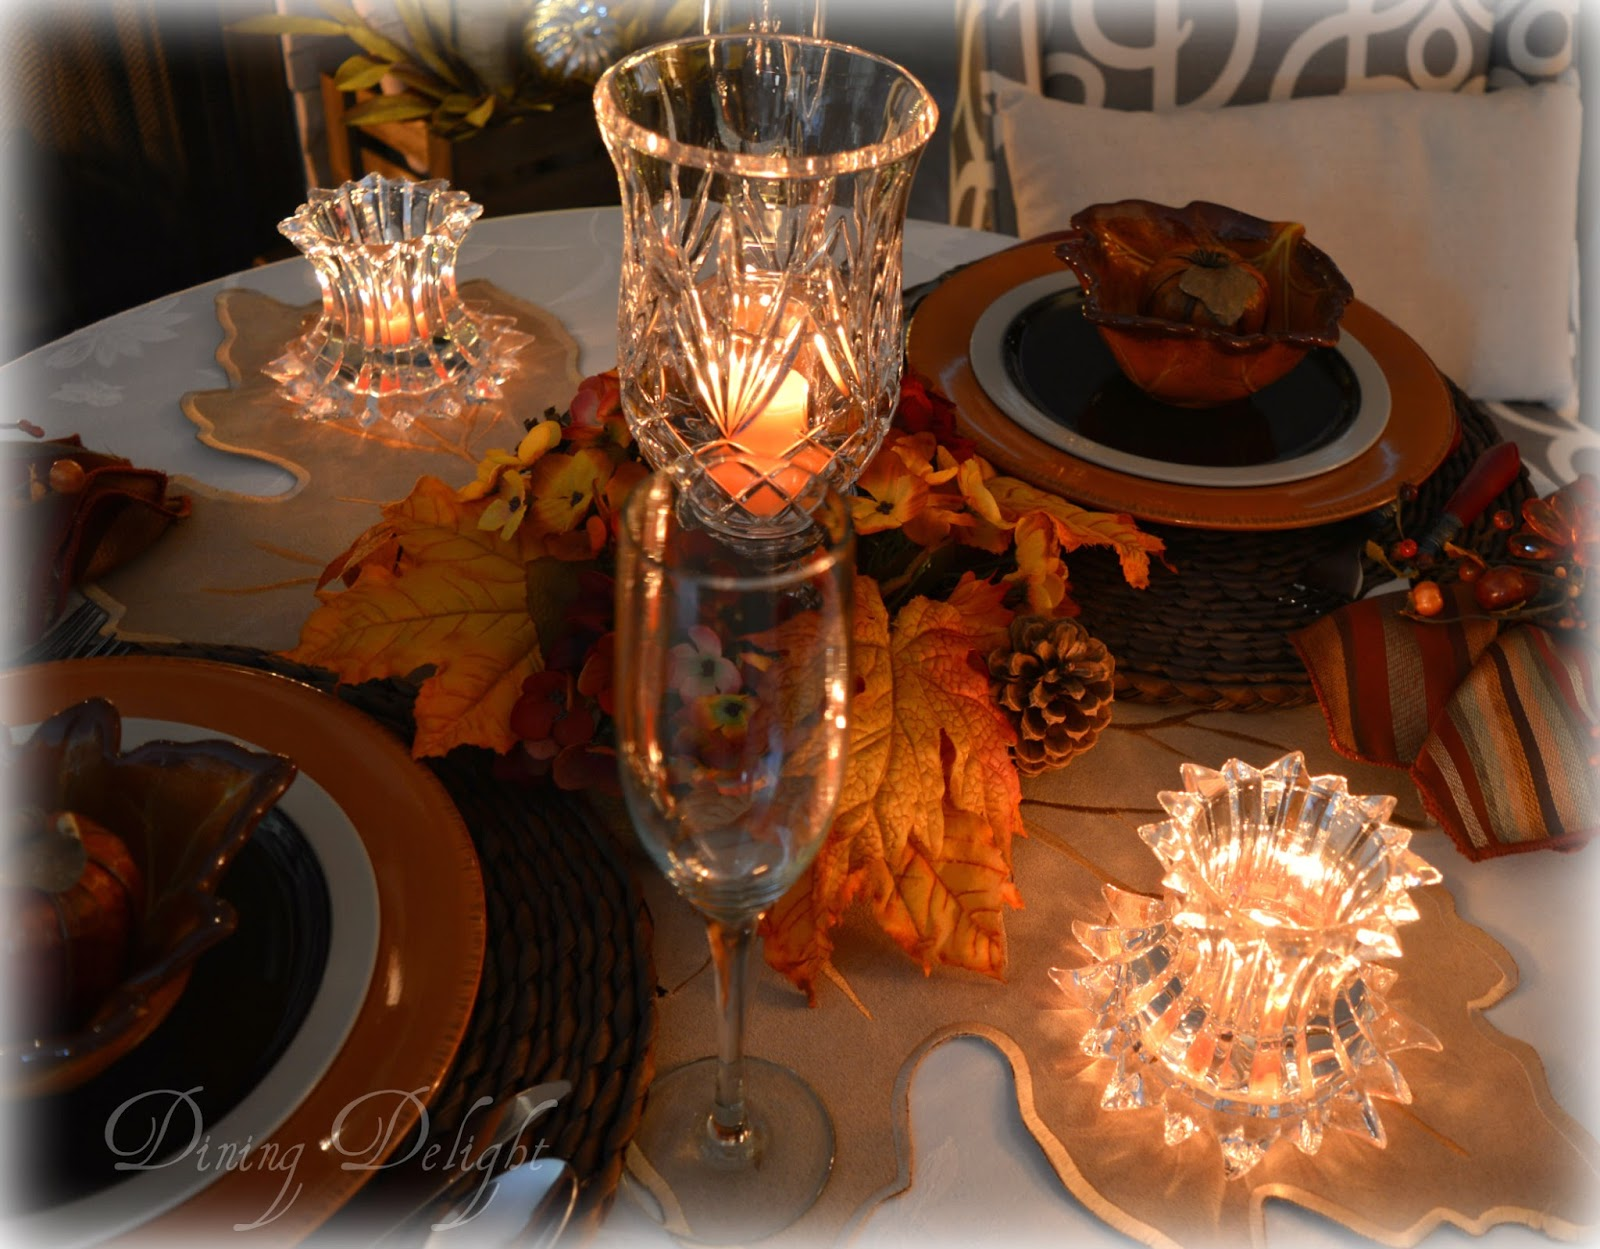 Dining delight anniversary table for two